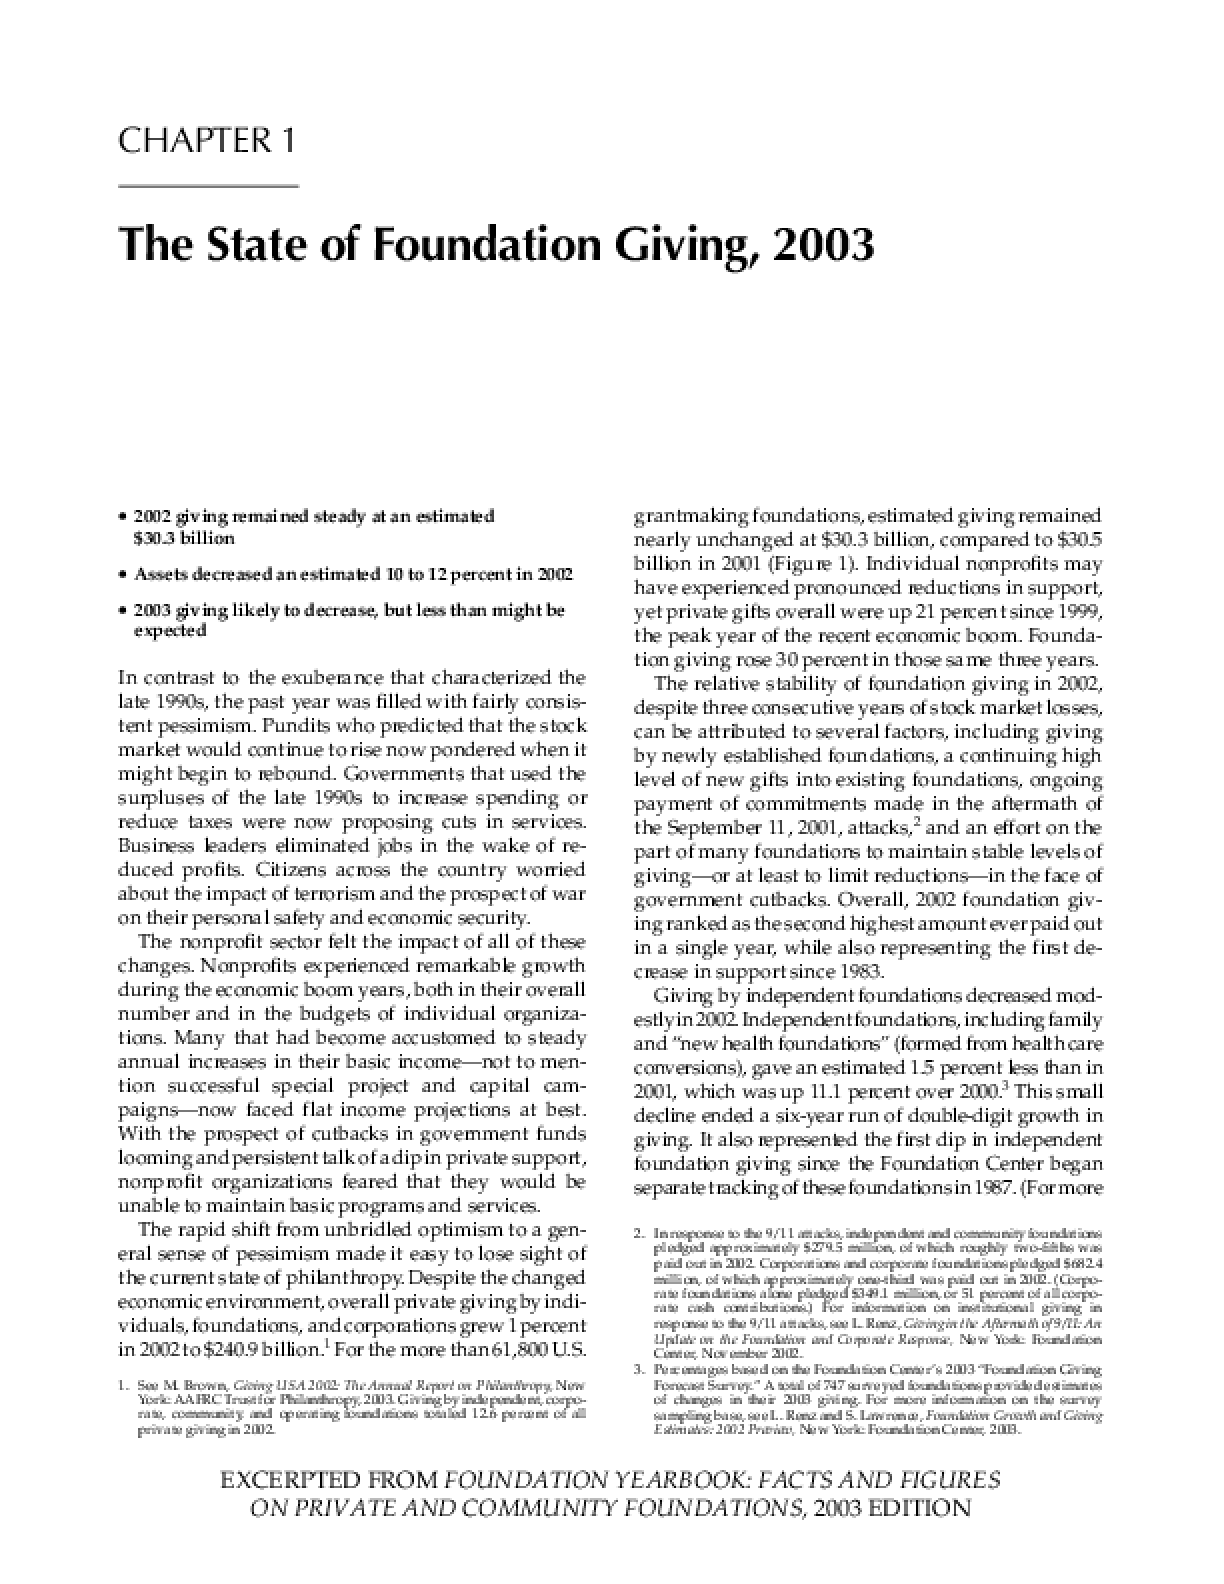 The State of Foundation Giving, 2003